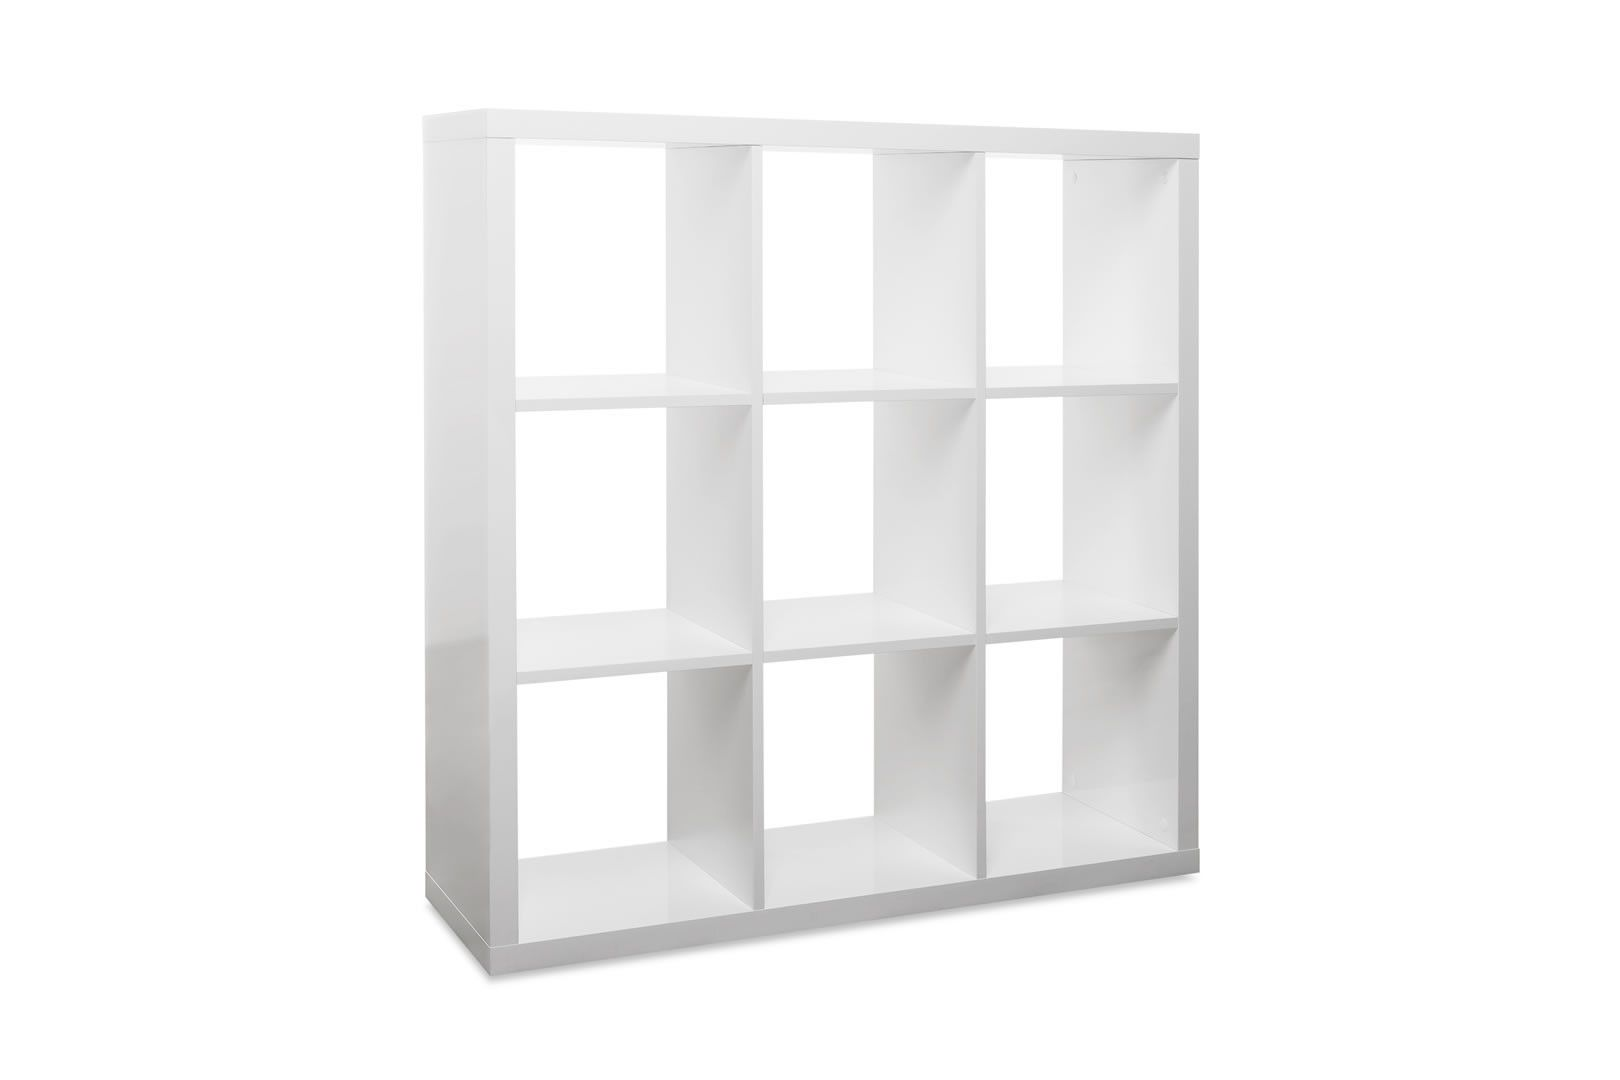 étagères Cube Murales Made In Europe Etagère Murale Cube 9 Cases Blanc Brillant Lana